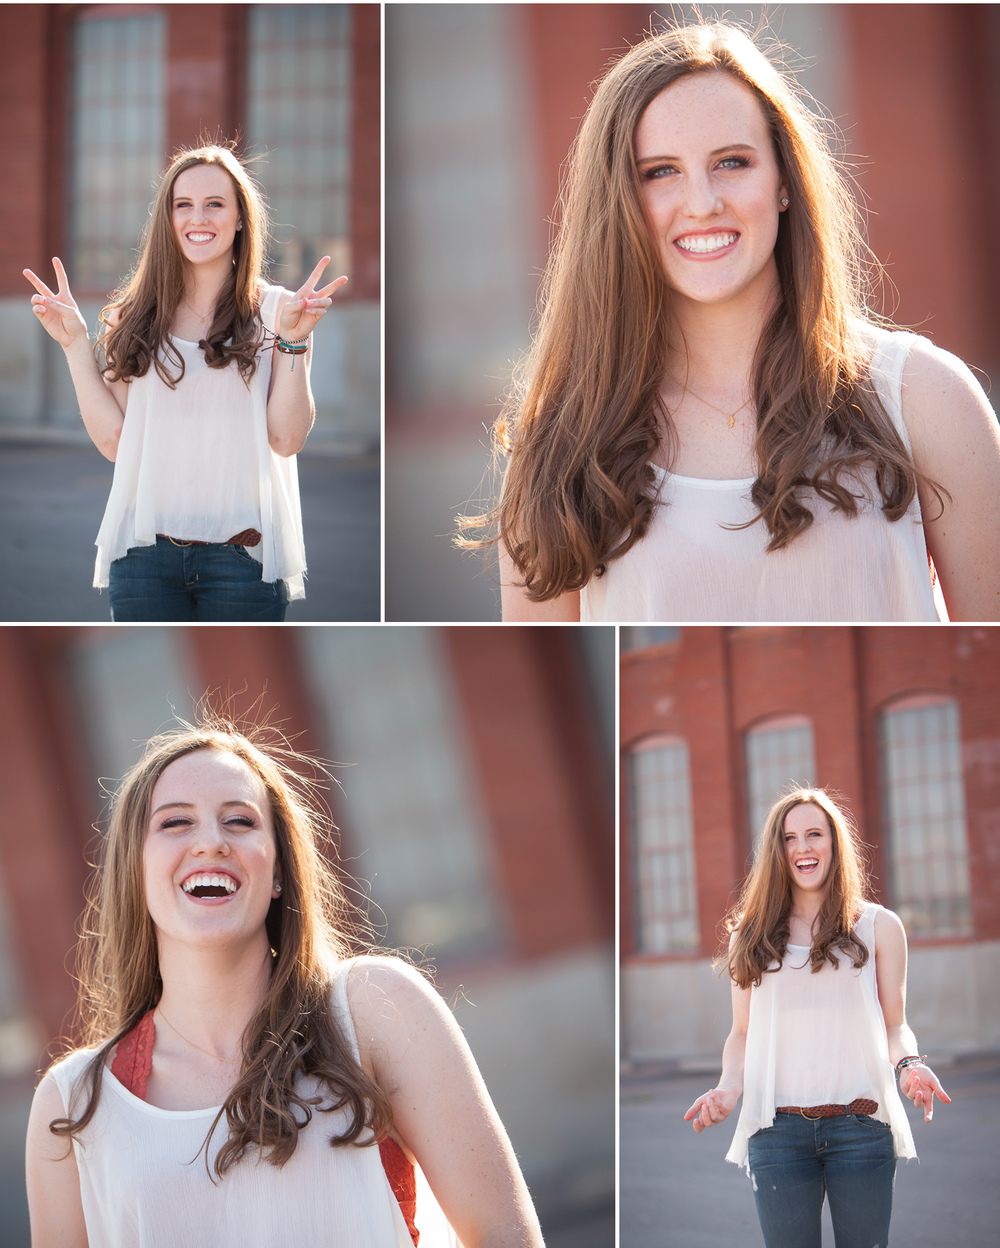 High School Senior Portraits of auburn haired girl laughing in front of historic brick building in Denver. Photographer Jennifer Koskinen, Merritt Design Photo